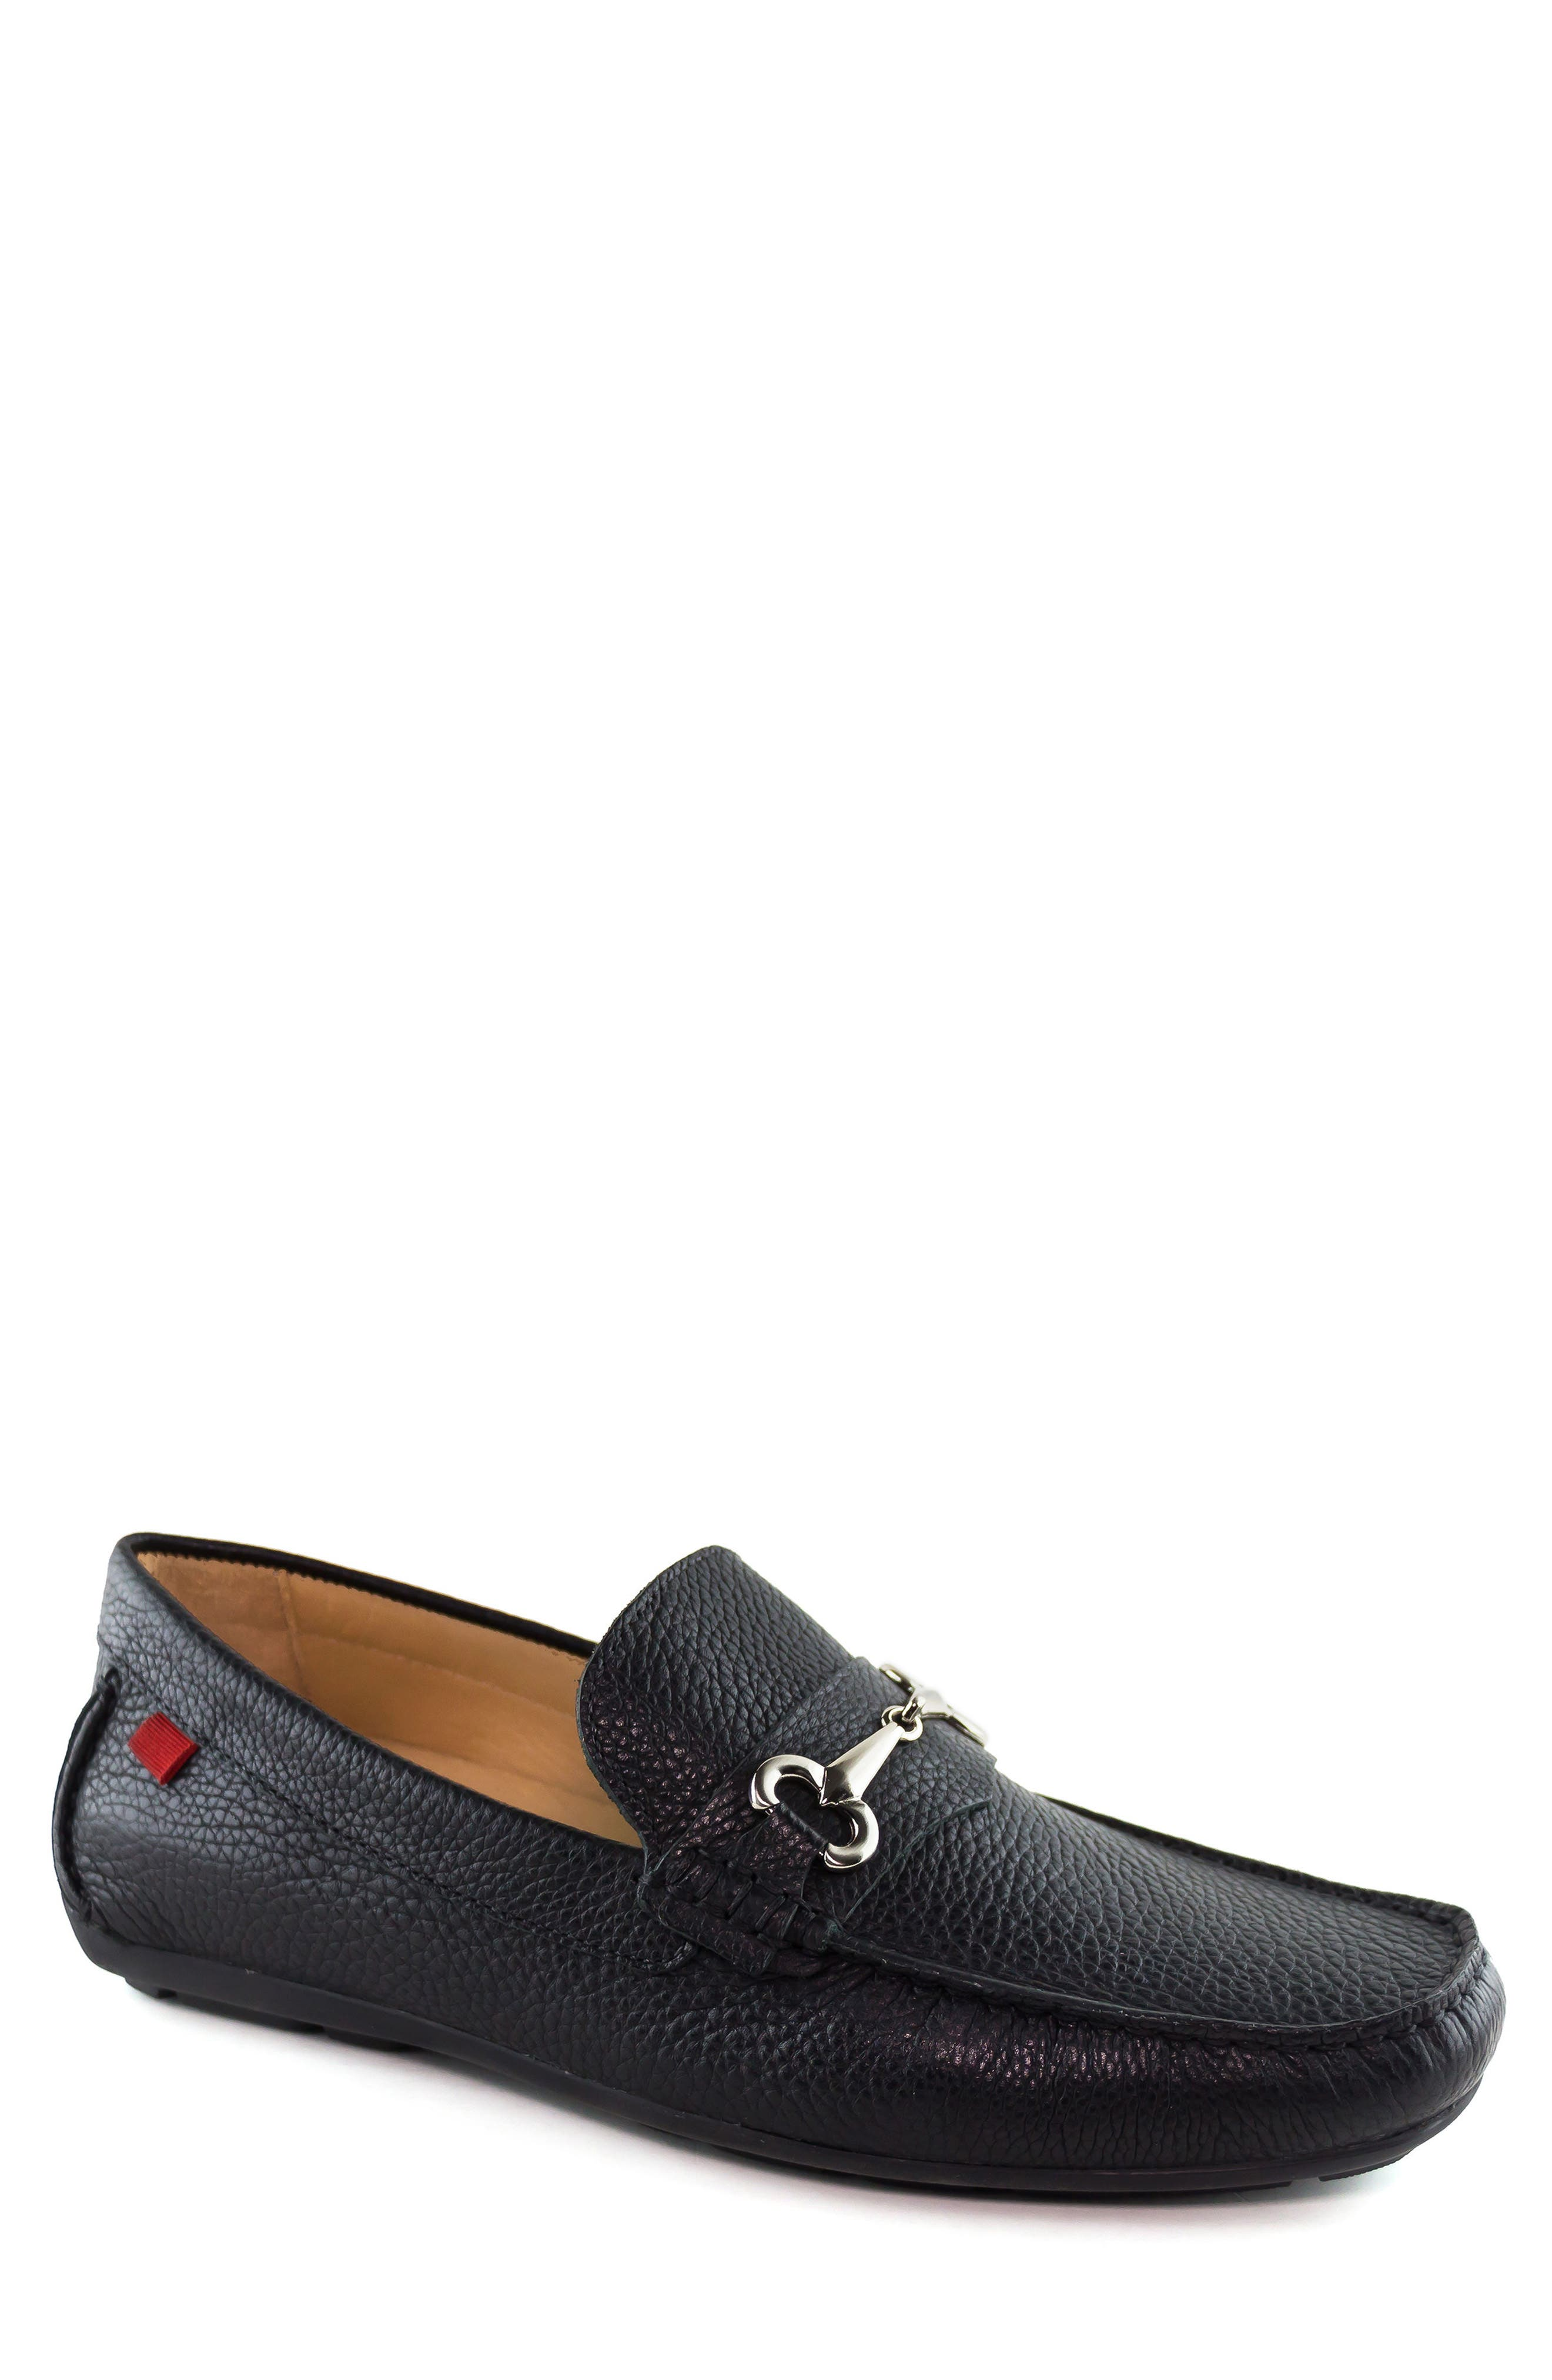 Wall Street Driving Shoe,                         Main,                         color, BLACK LEATHER